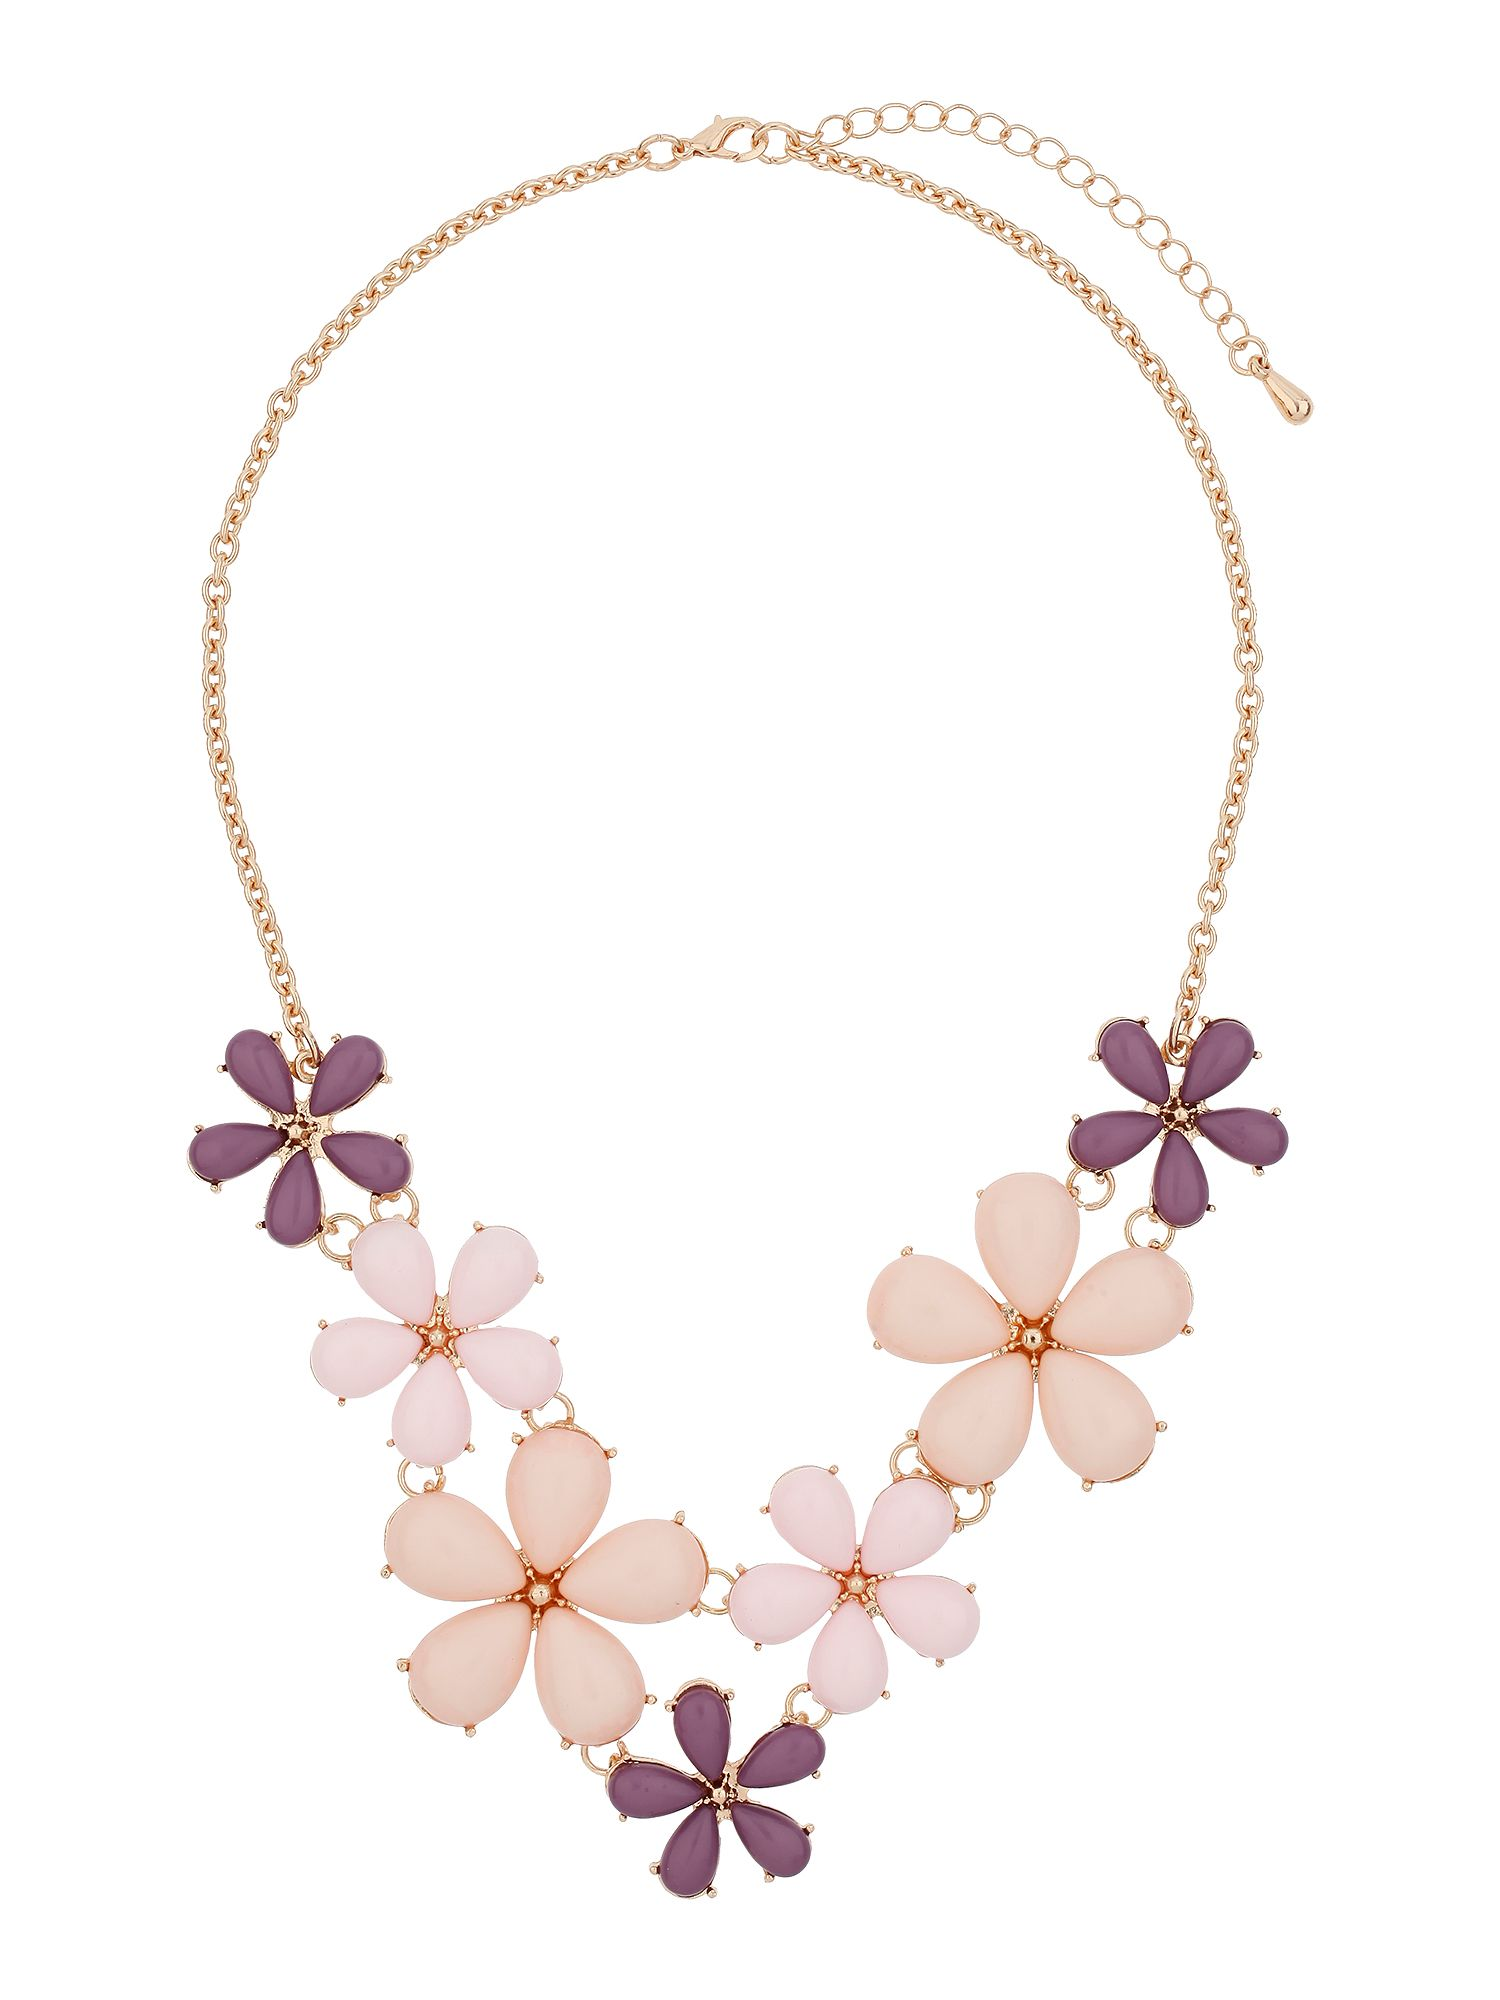 Multi daisy flower necklace